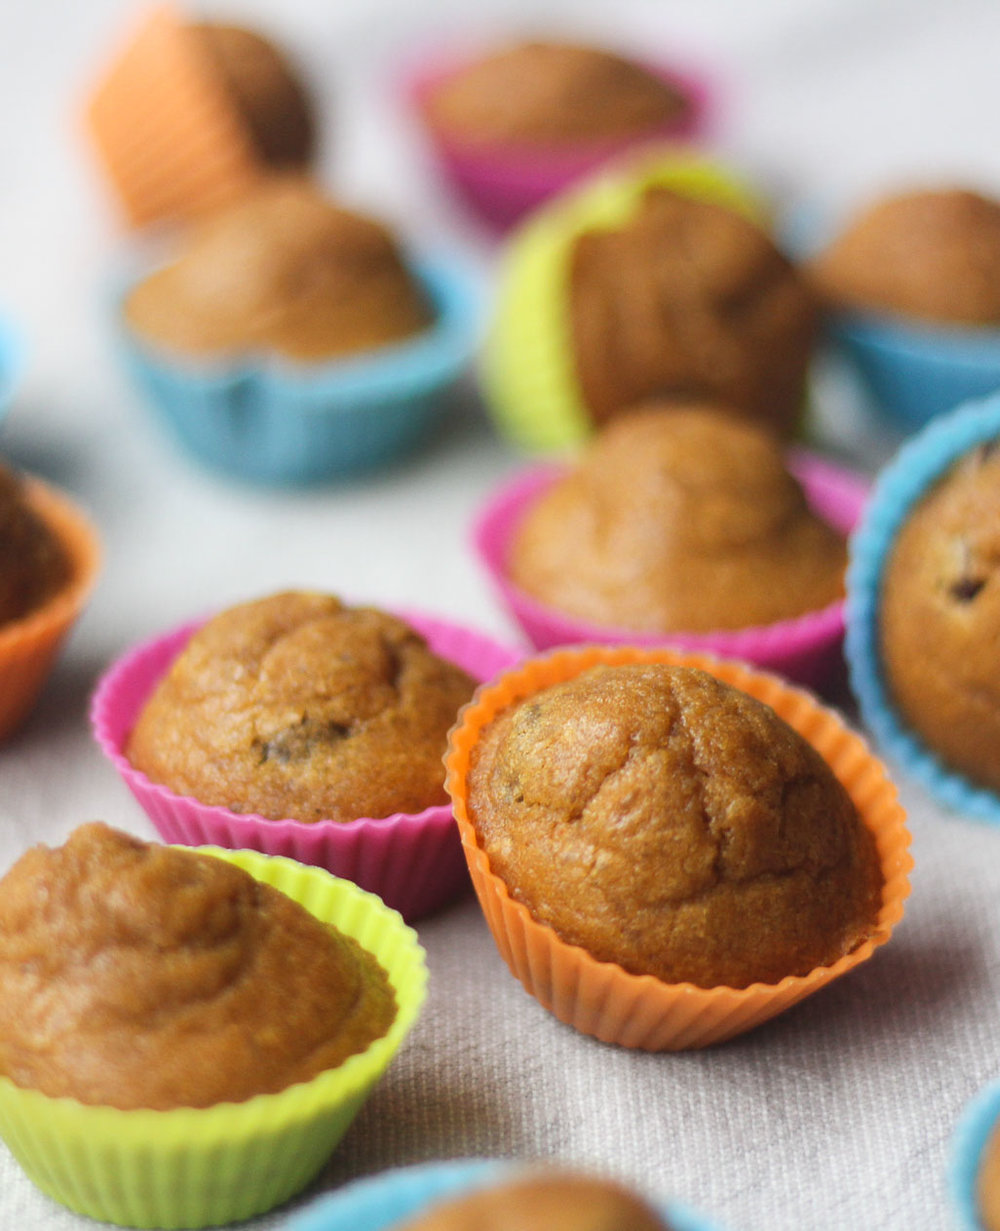 low-FODMAP_dairyfree_paleo_glutenfree_muffins (2 of 4).JPG